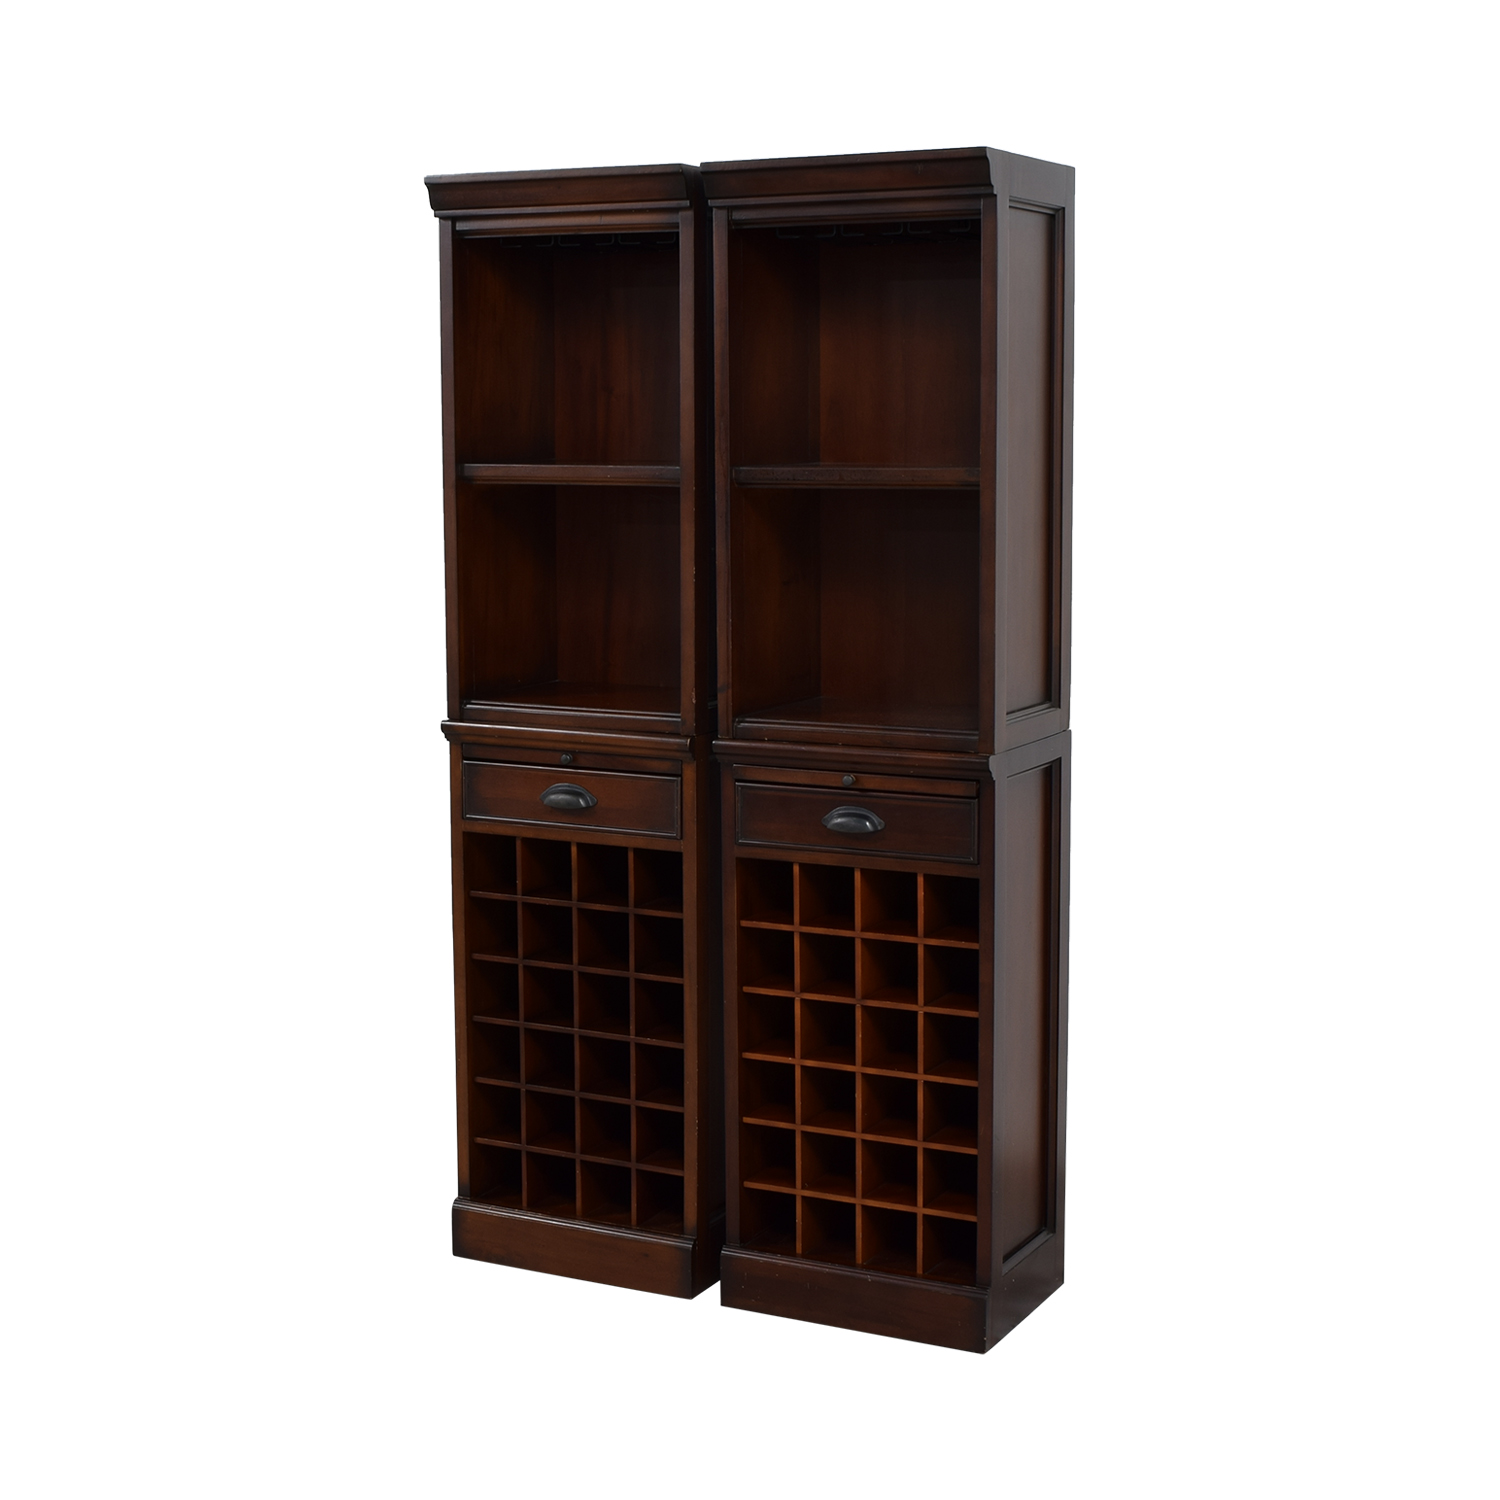 44 Off Pottery Barn Pottery Barn Modular Wine Towers Storage